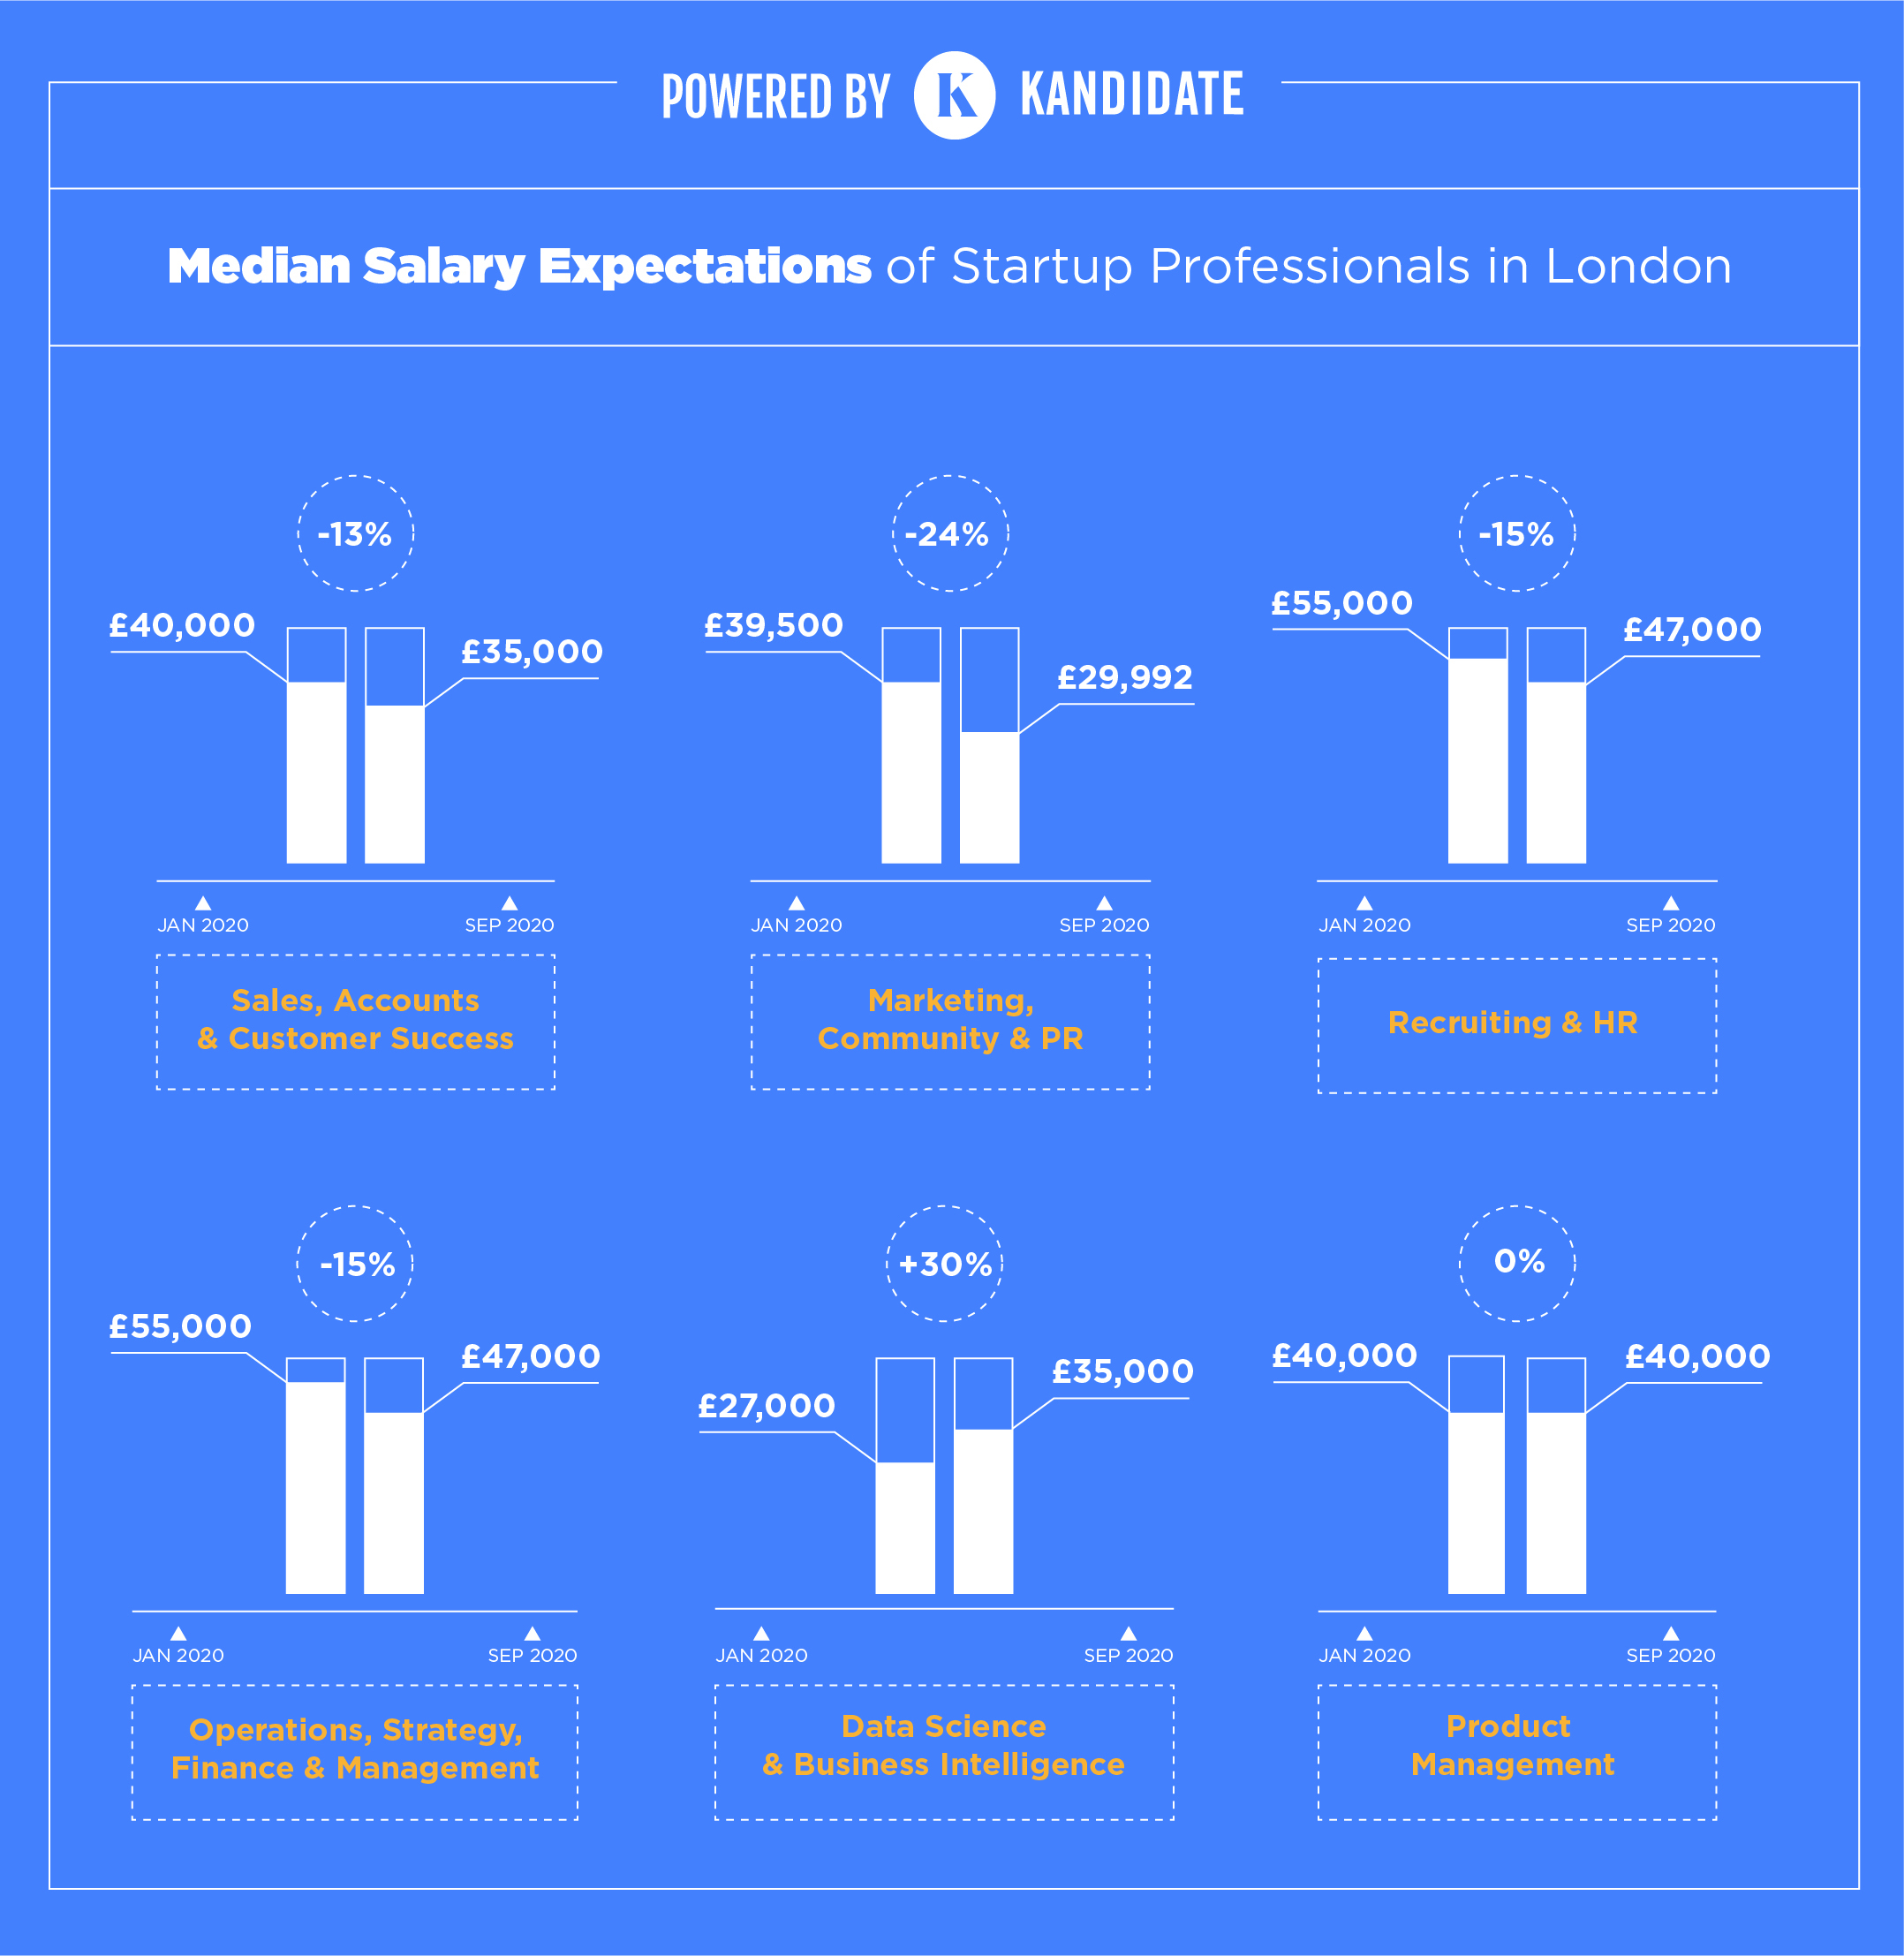 salary-expectations-by-subsector-startup-professionals-london